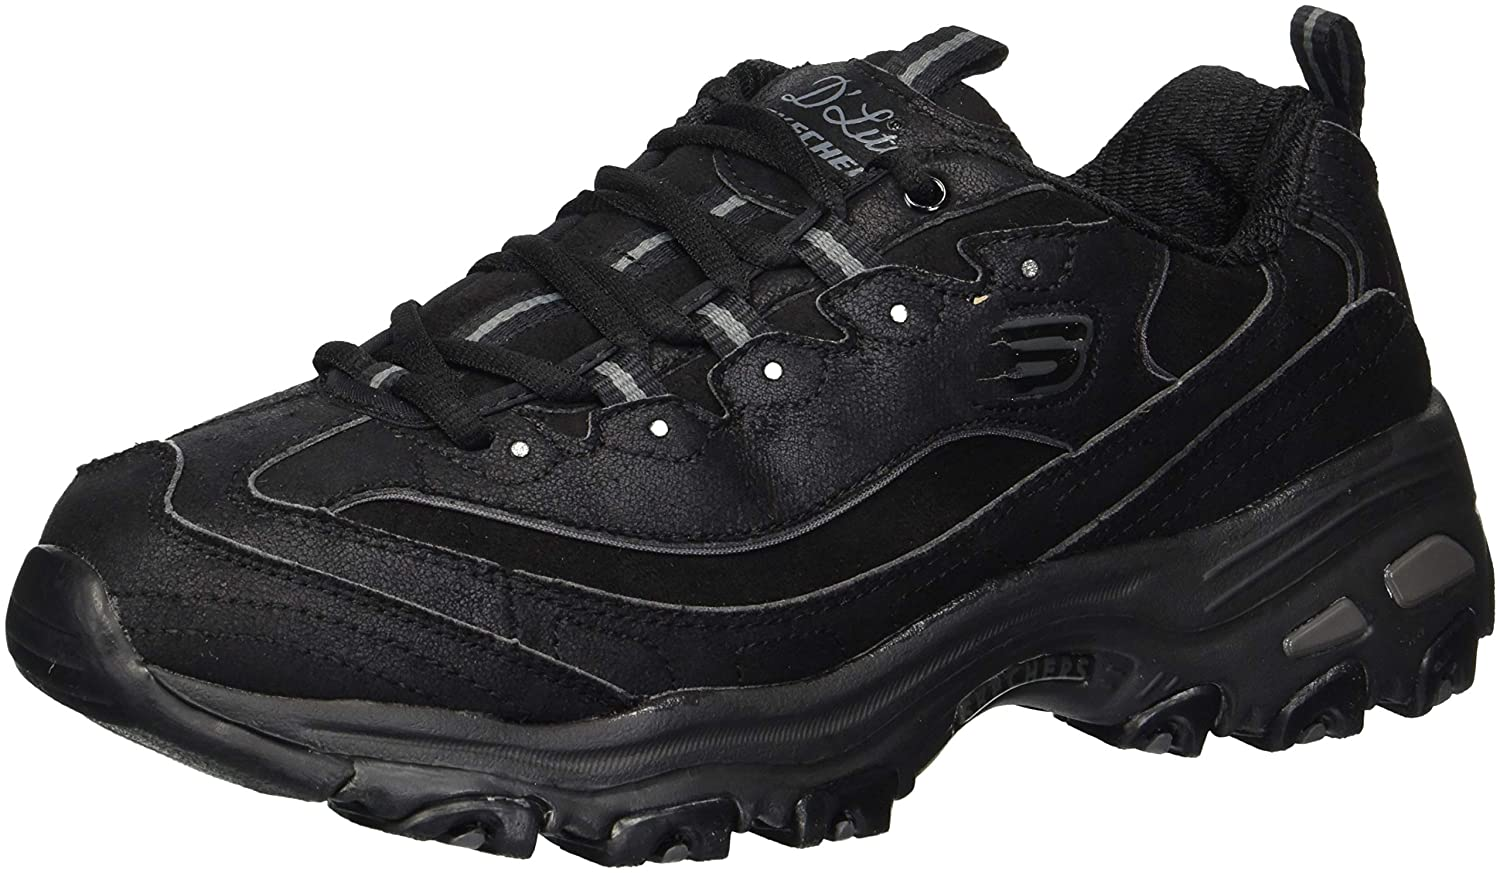 Skechers B06XJ3YMC8 D Lites-New School, Baskets Skechers Femme 19998 Noir aa3bca0 - tbfe.space